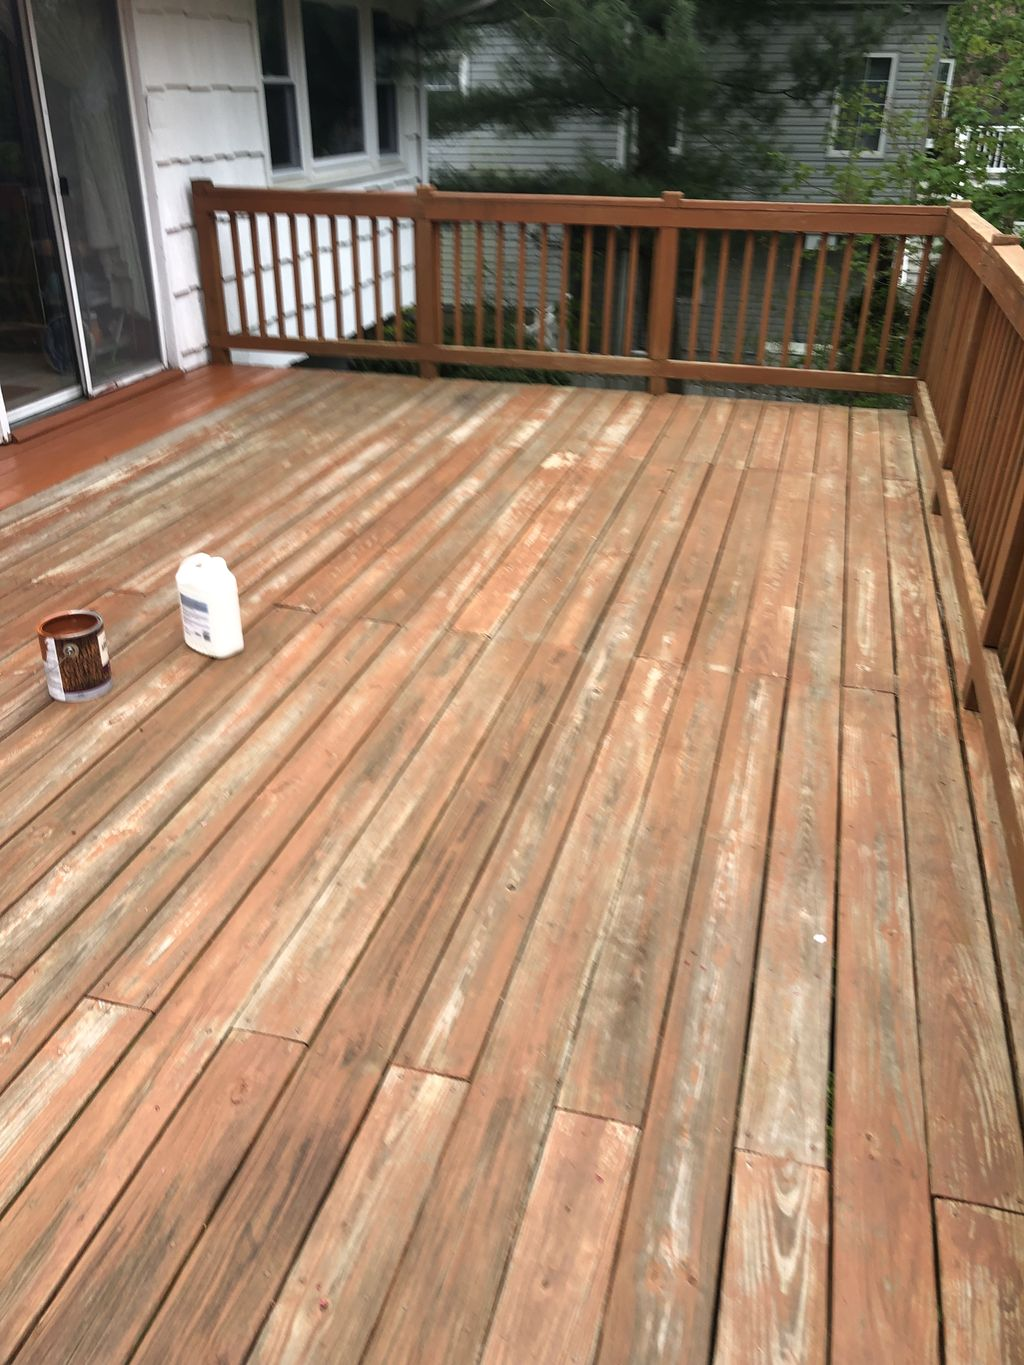 Power wash and restain